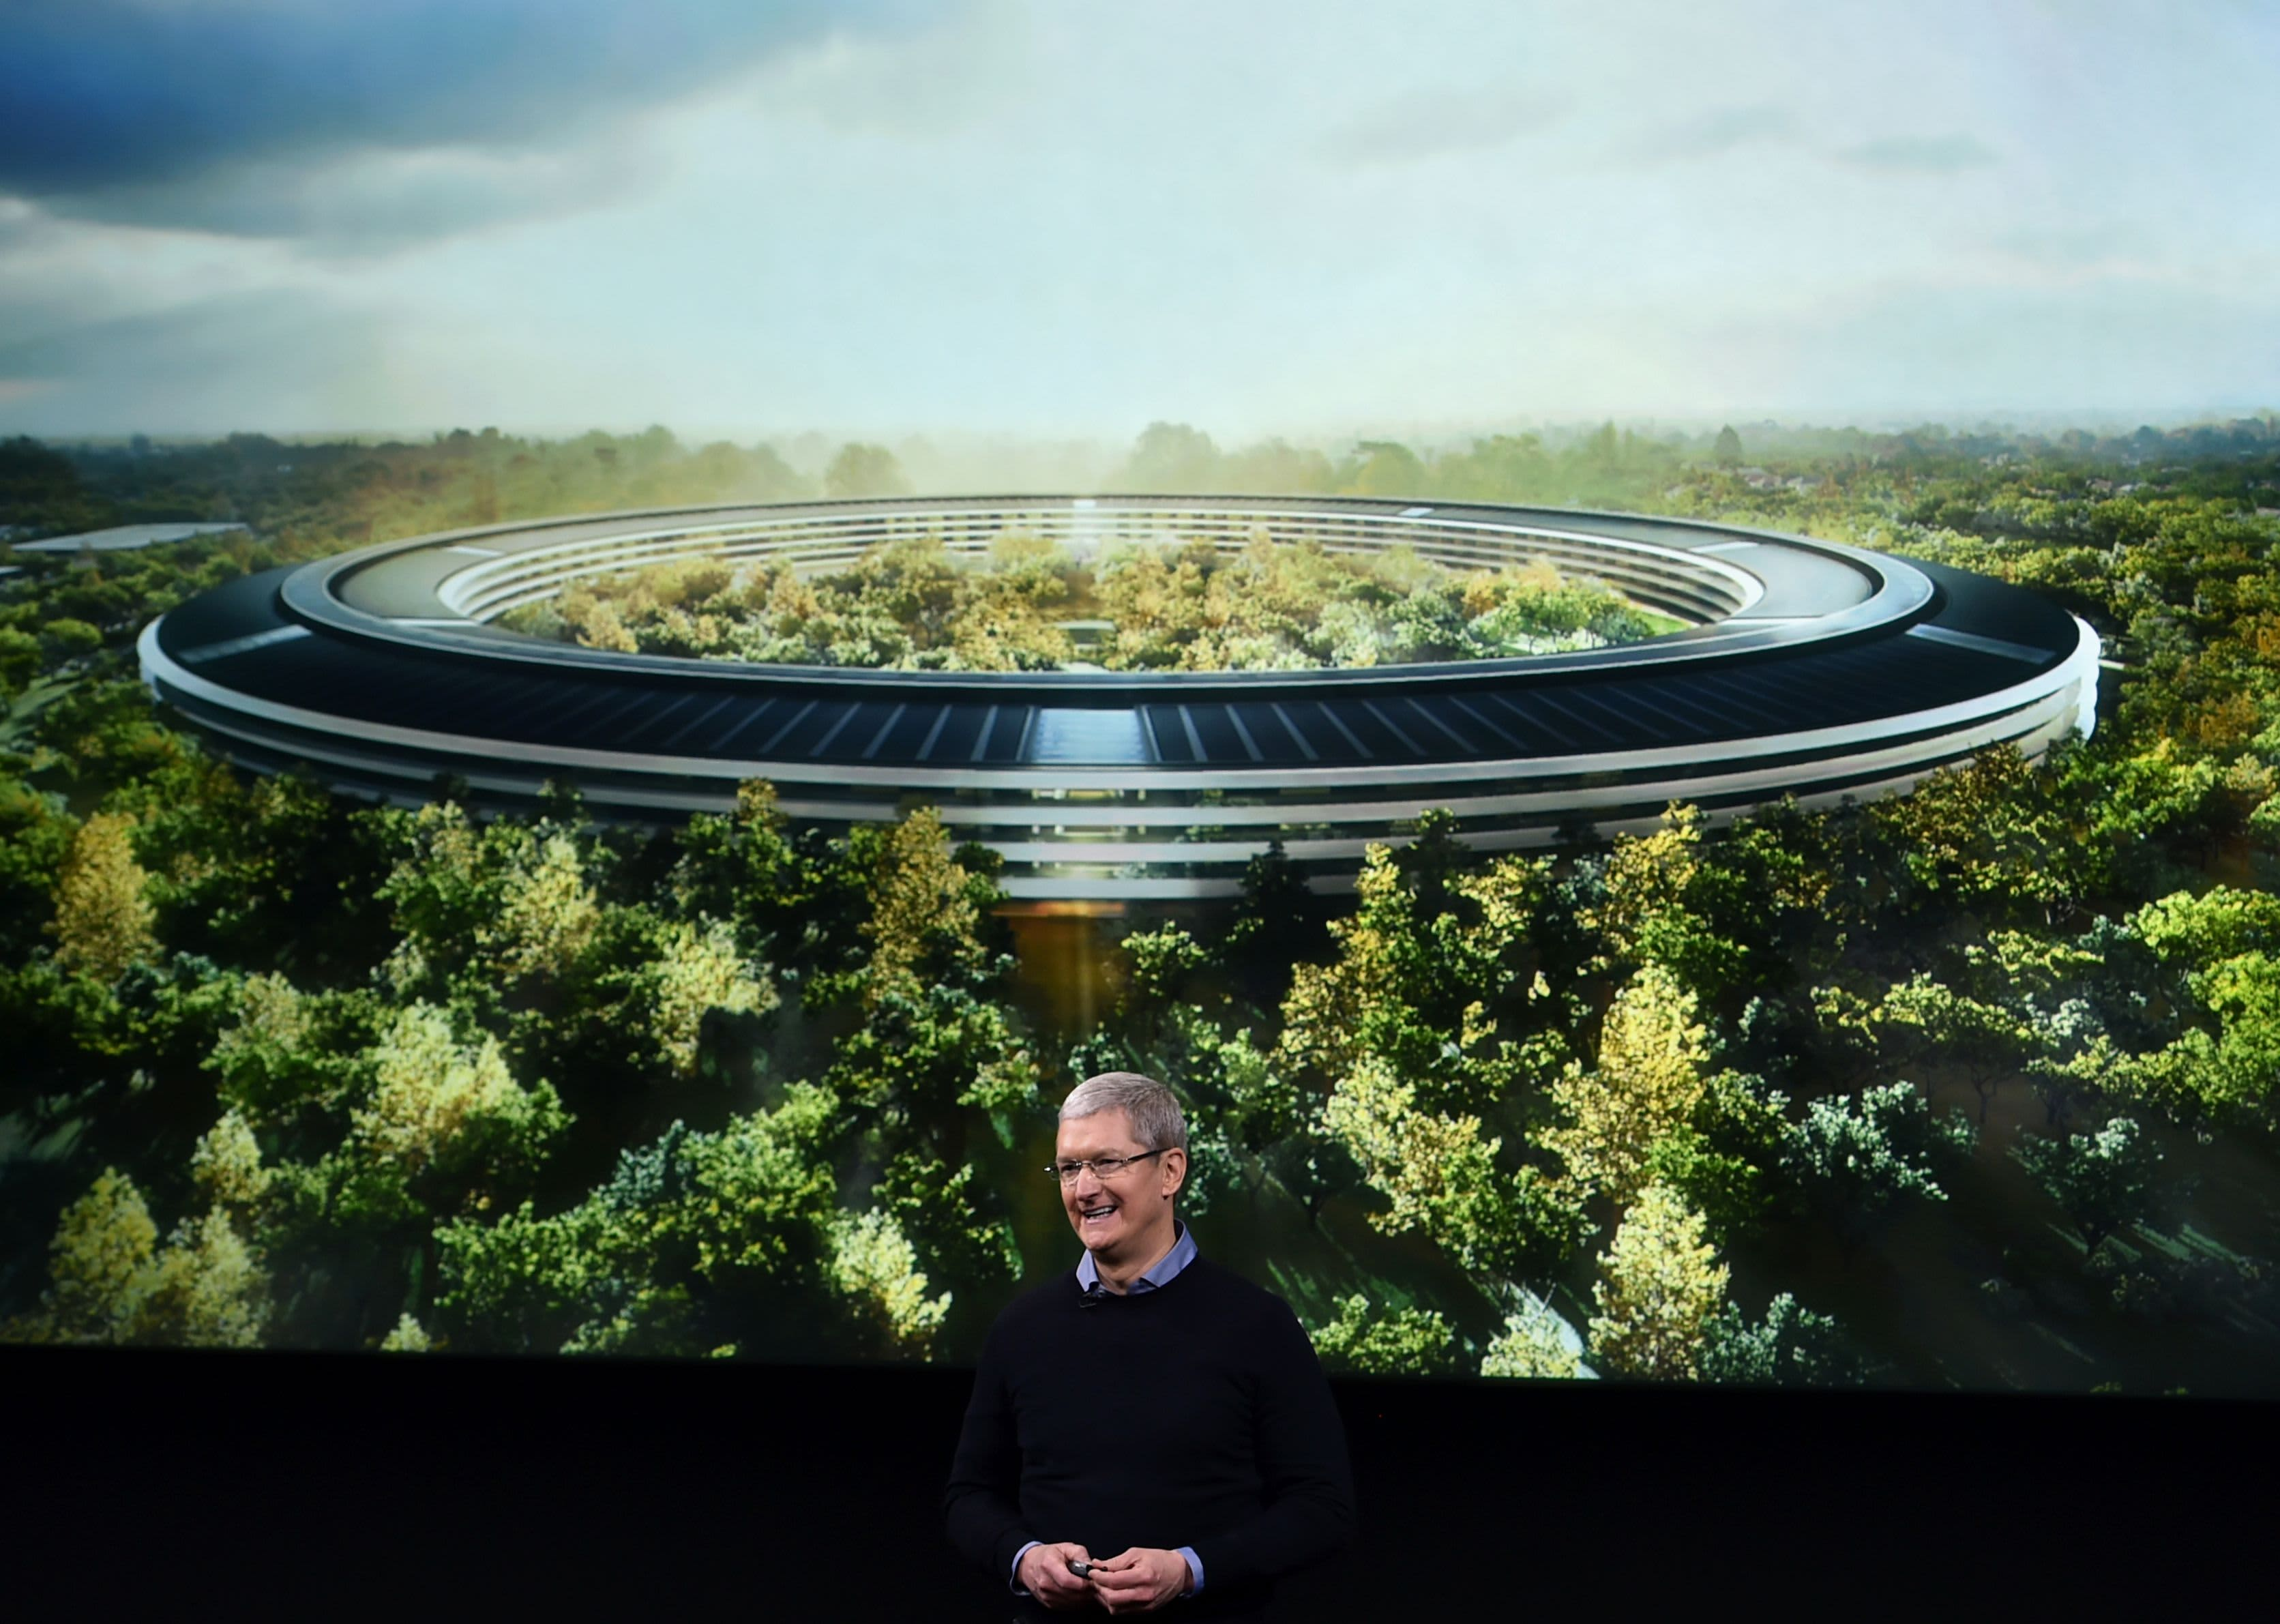 Channeling Steve Jobs Apple seeks design perfection at new